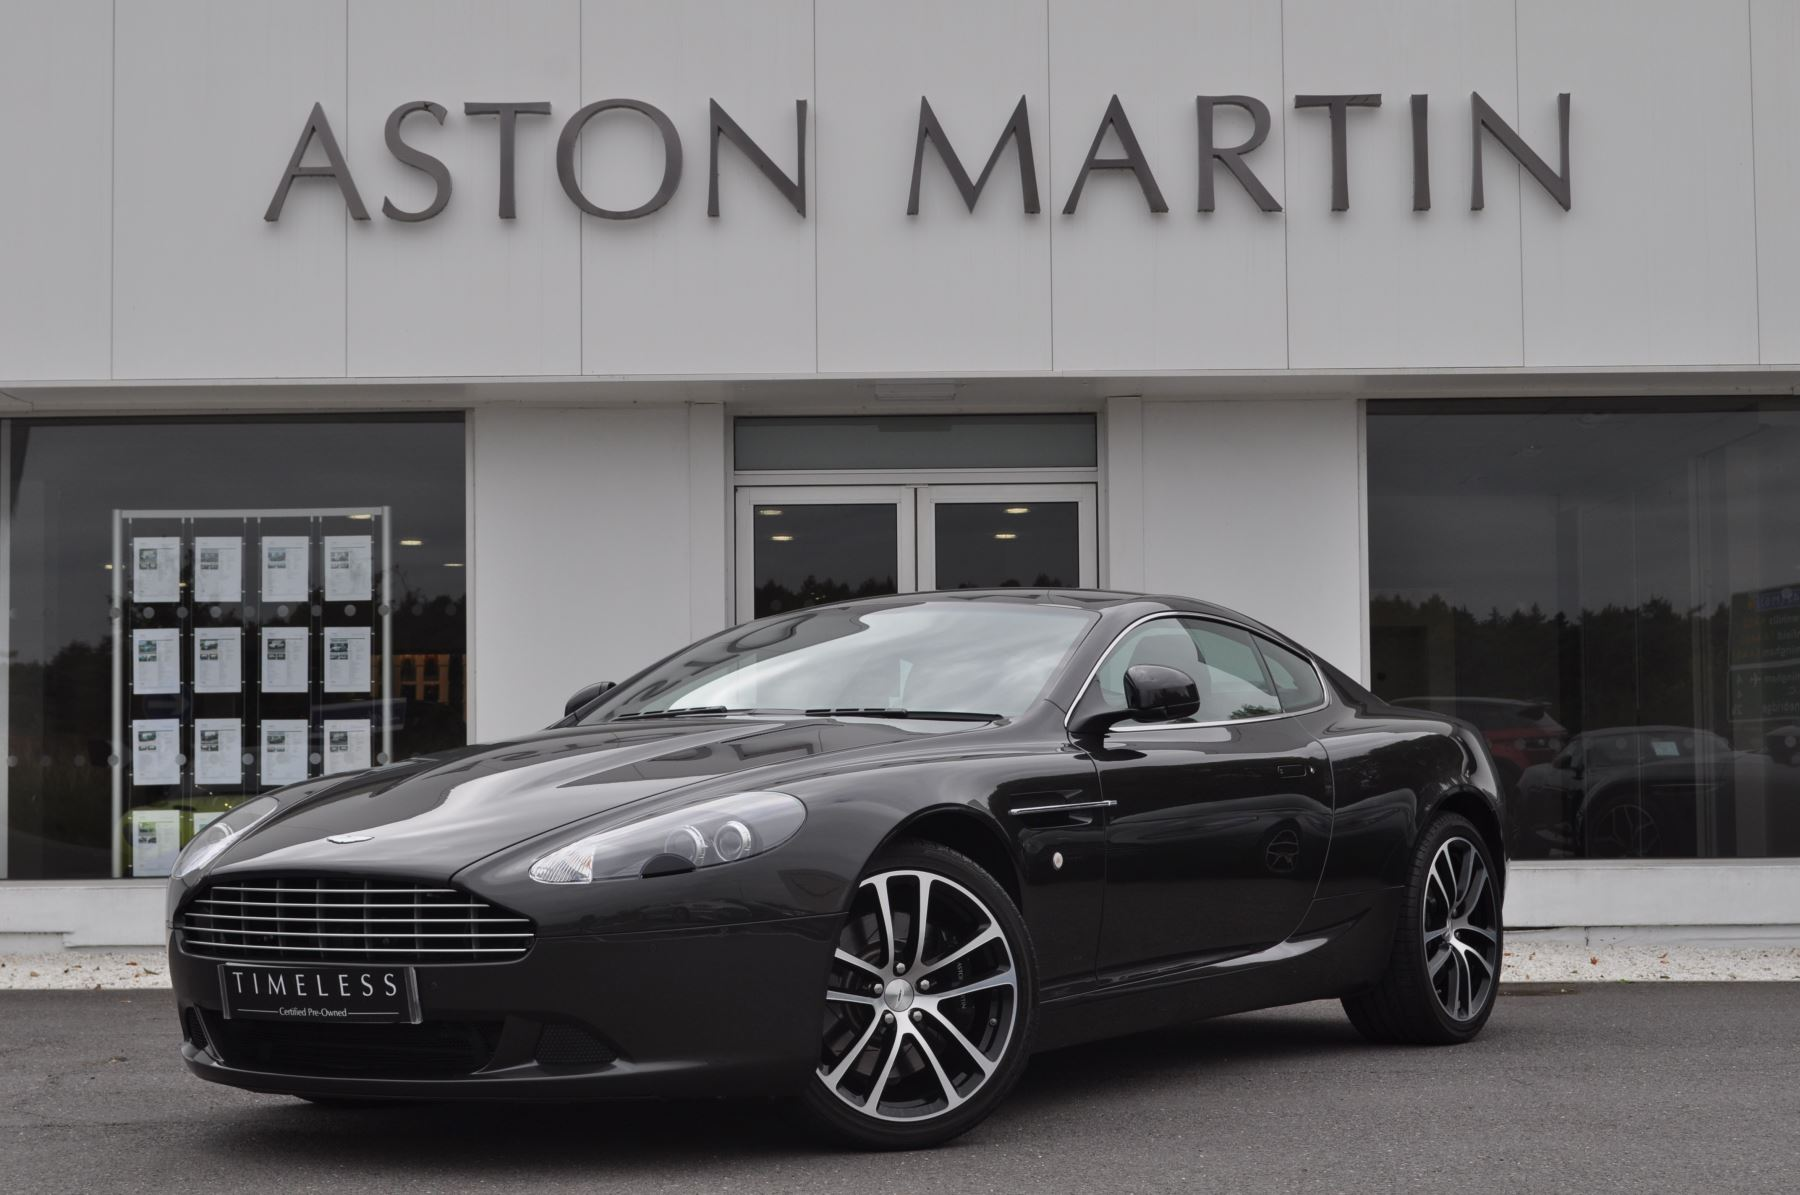 Used Aston Martin DB Coupe Cars For Sale Grange - Used aston martin db9